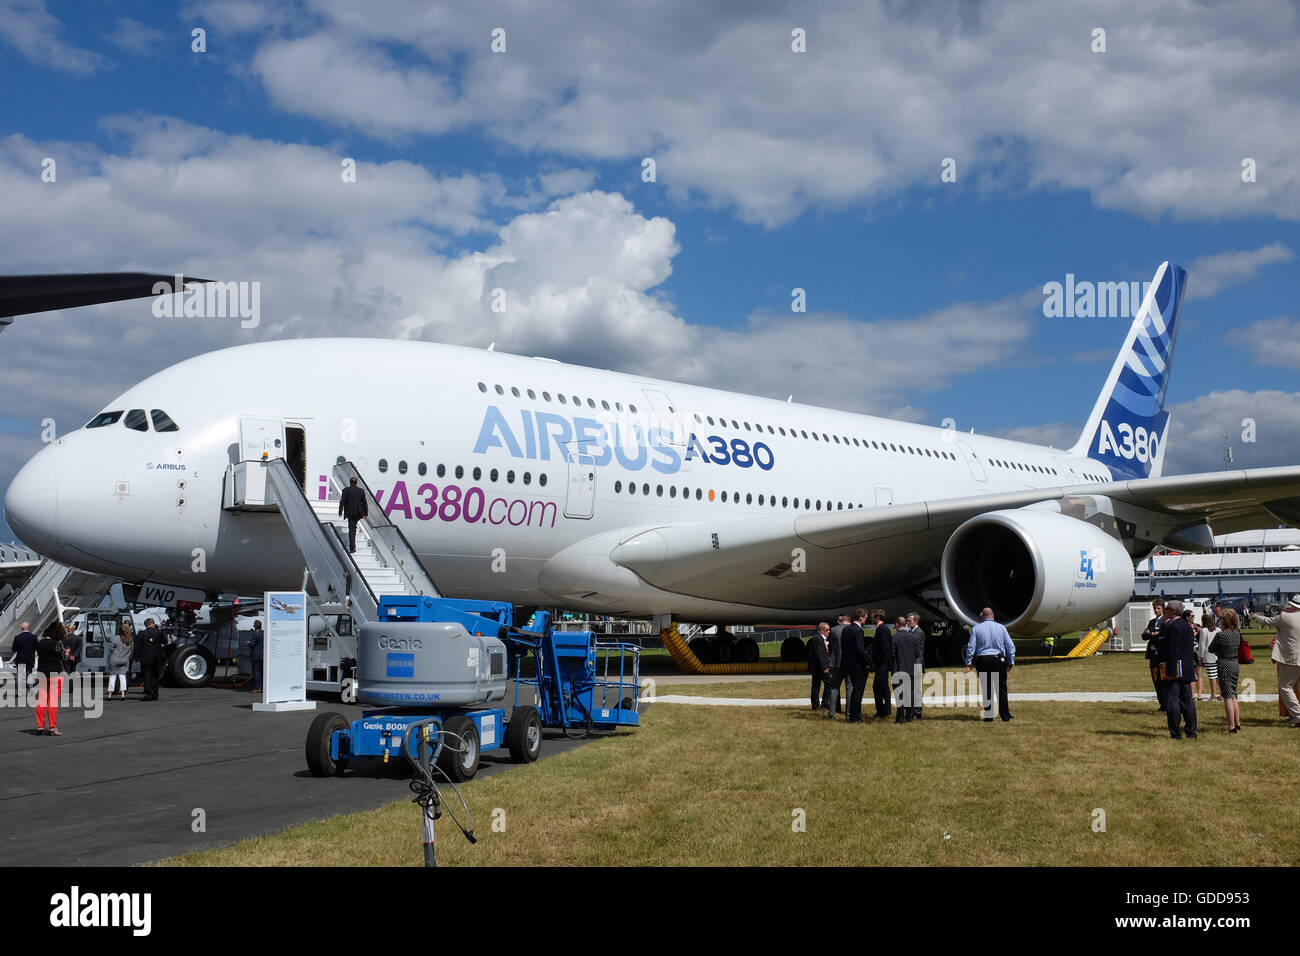 An Airbus A380 on show at the Farnborough Airshow near London, England, in 2016. - Stock Image